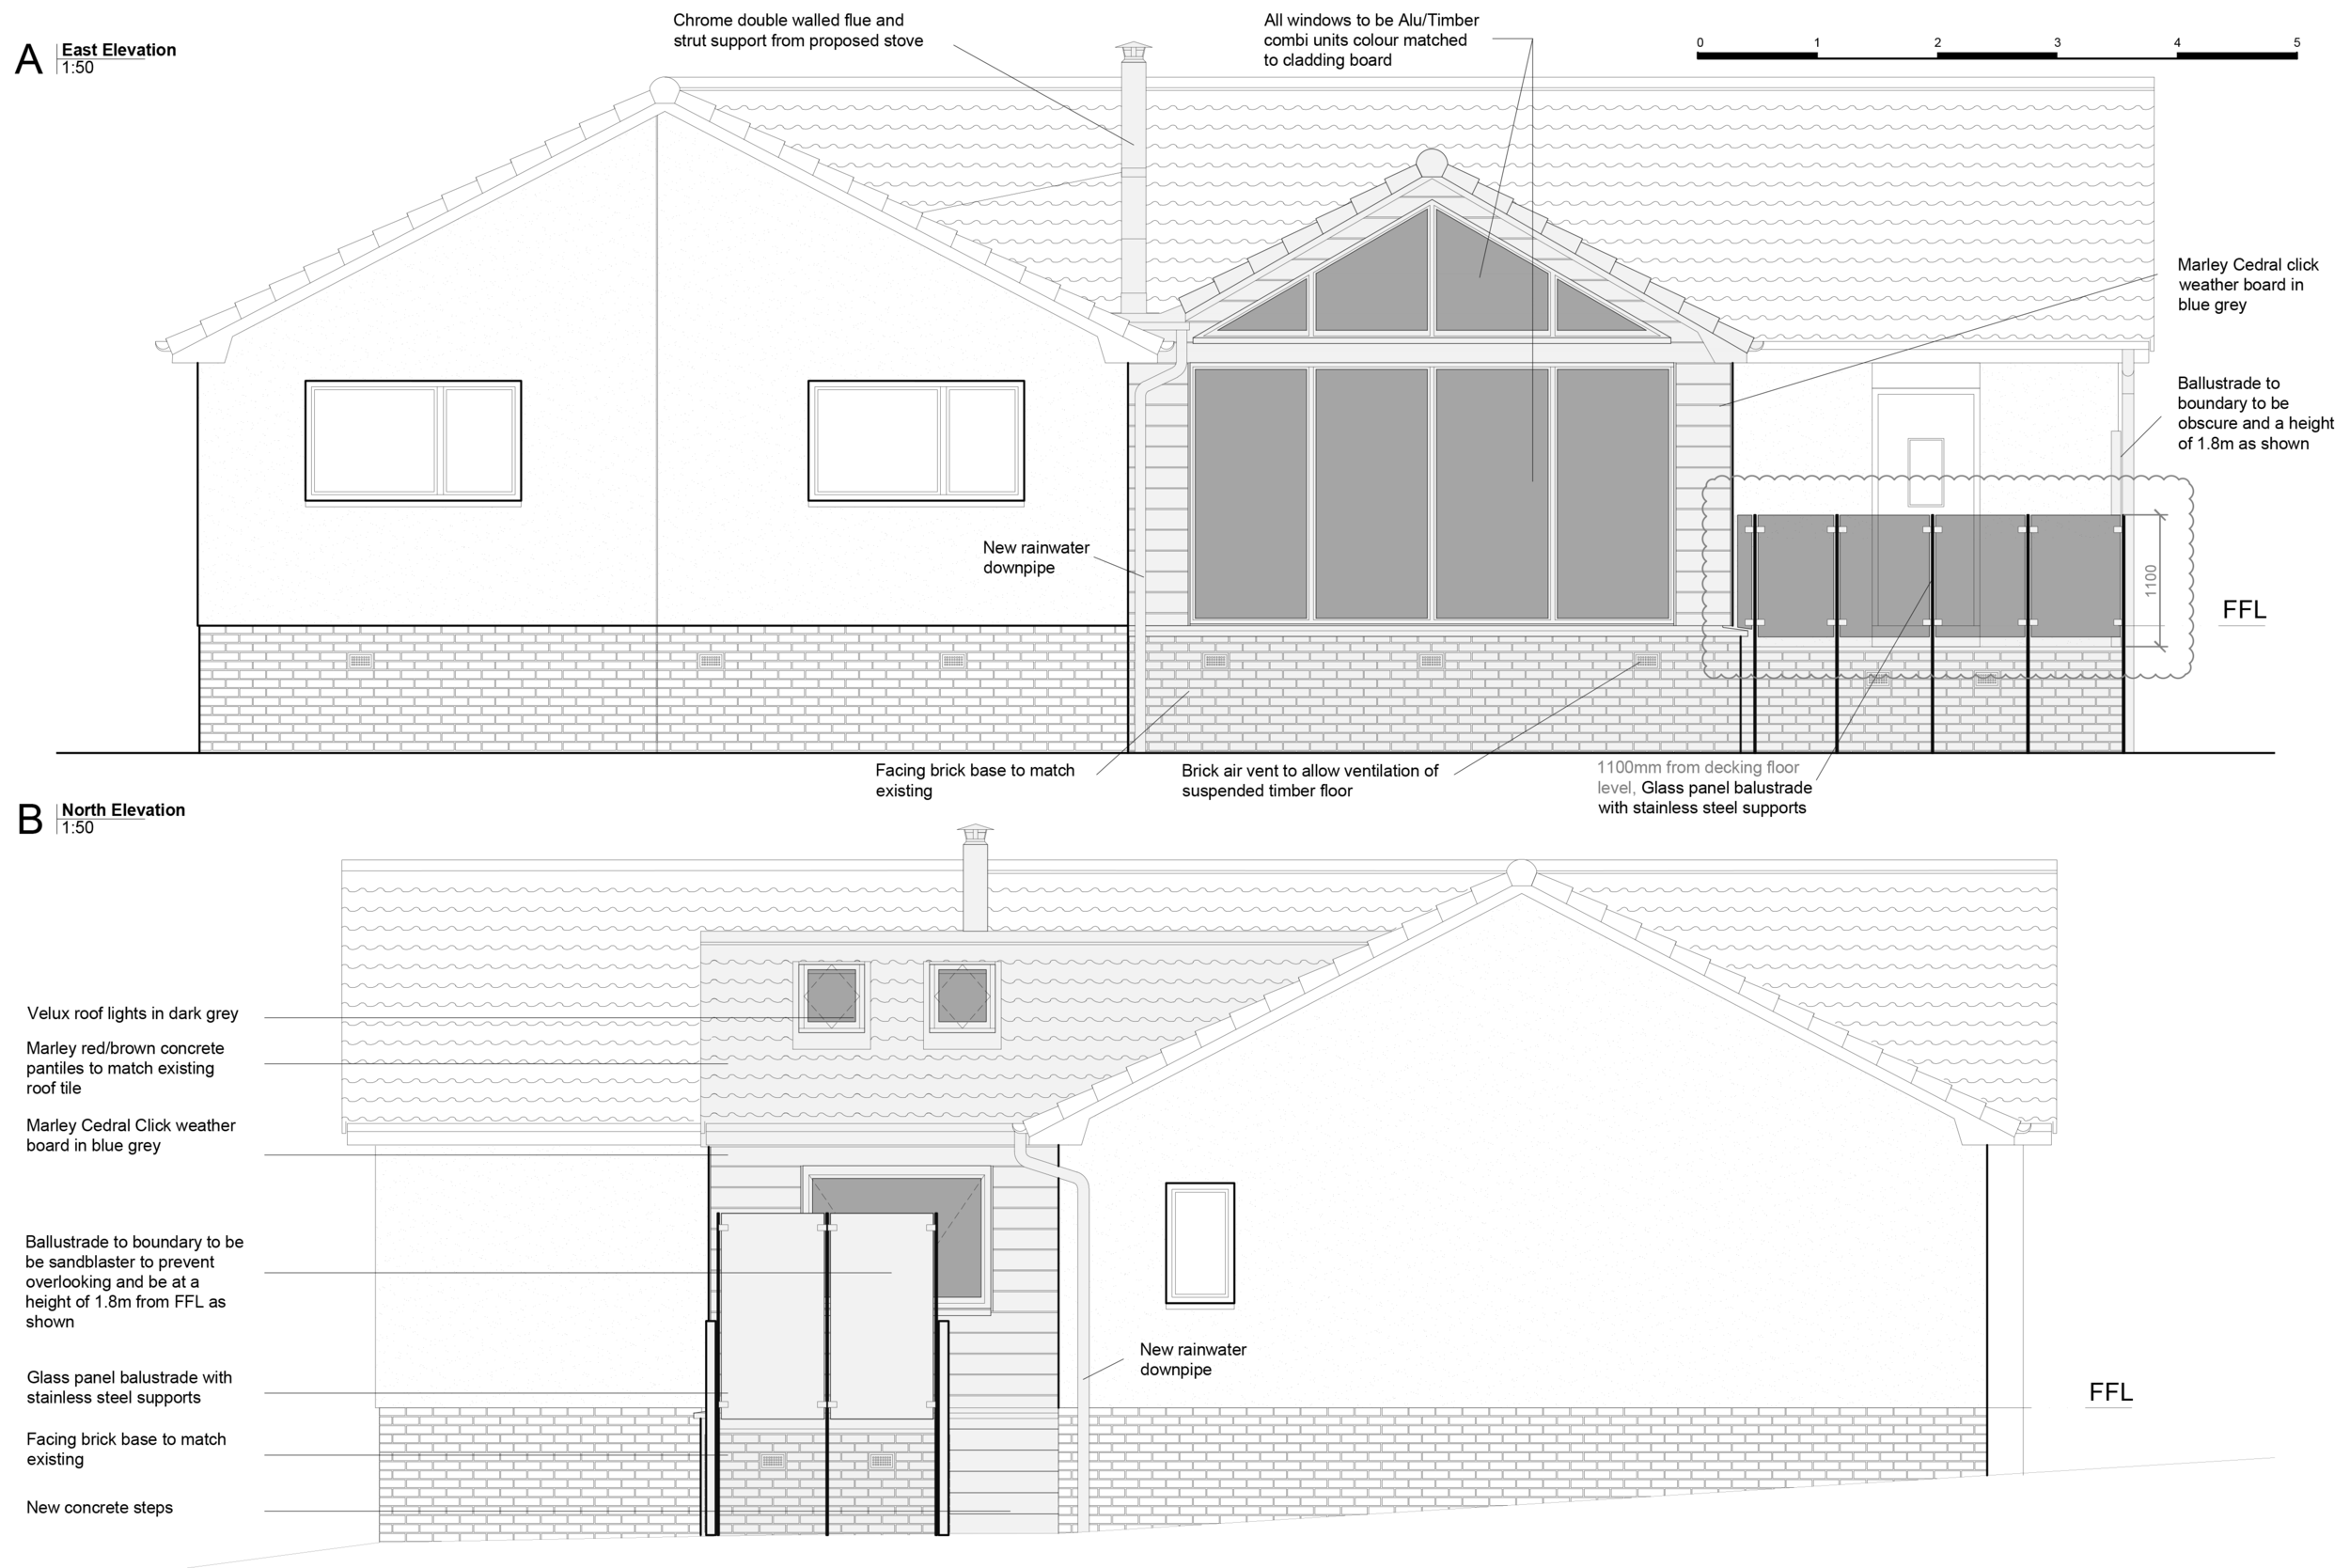 Proposed Elevations as part of Building Warrant package